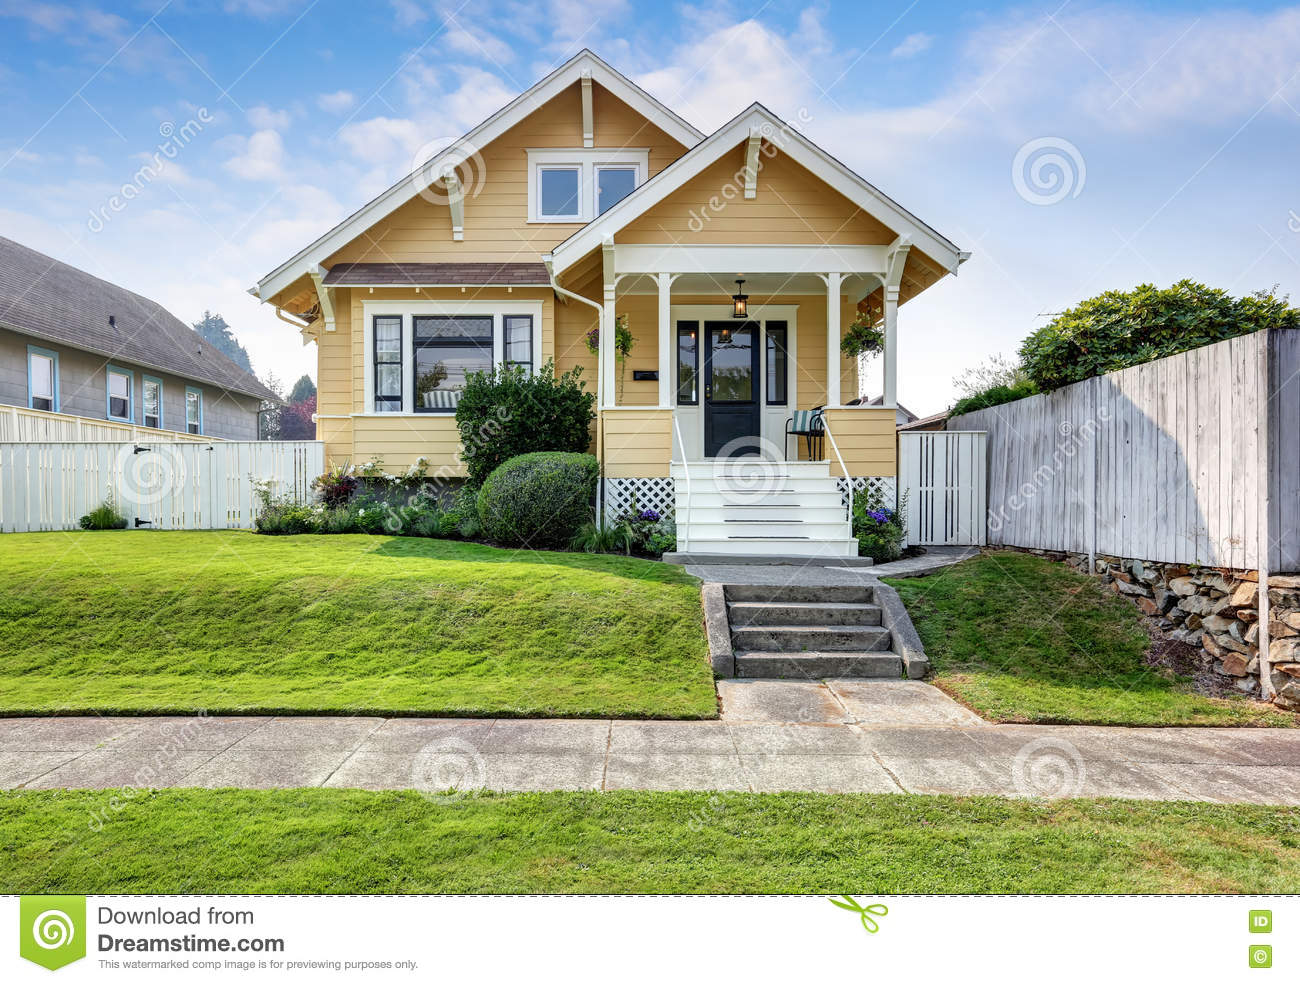 American craftsman home with yellow exterior paint stock image image 76504251 for Exterior paint yellow